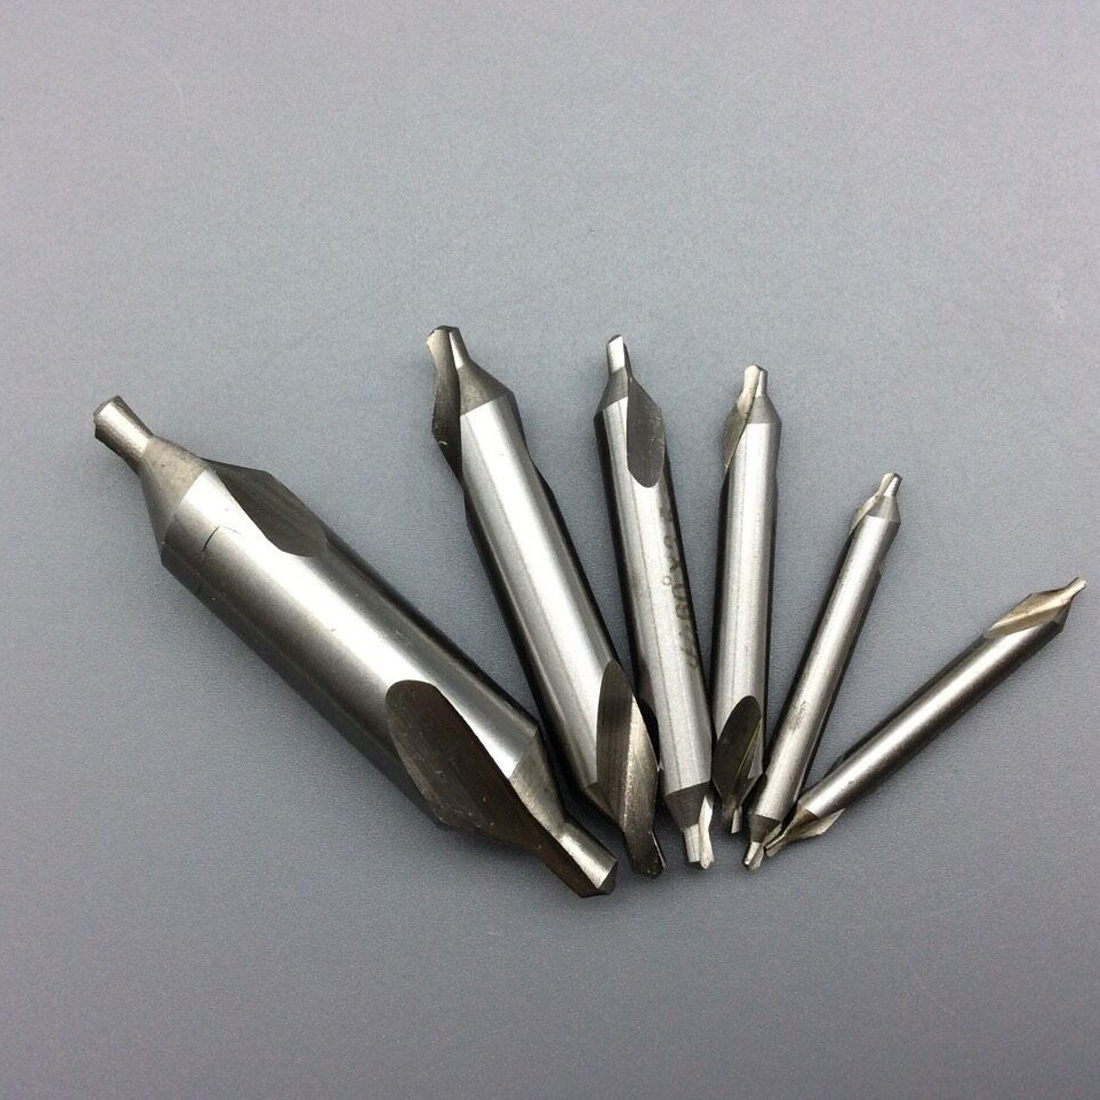 1pcs Combined Countersink Bits 60 Degree Center Drill Set HSS Metal Drilling Power Tools Lathe Milling Cutter Tool